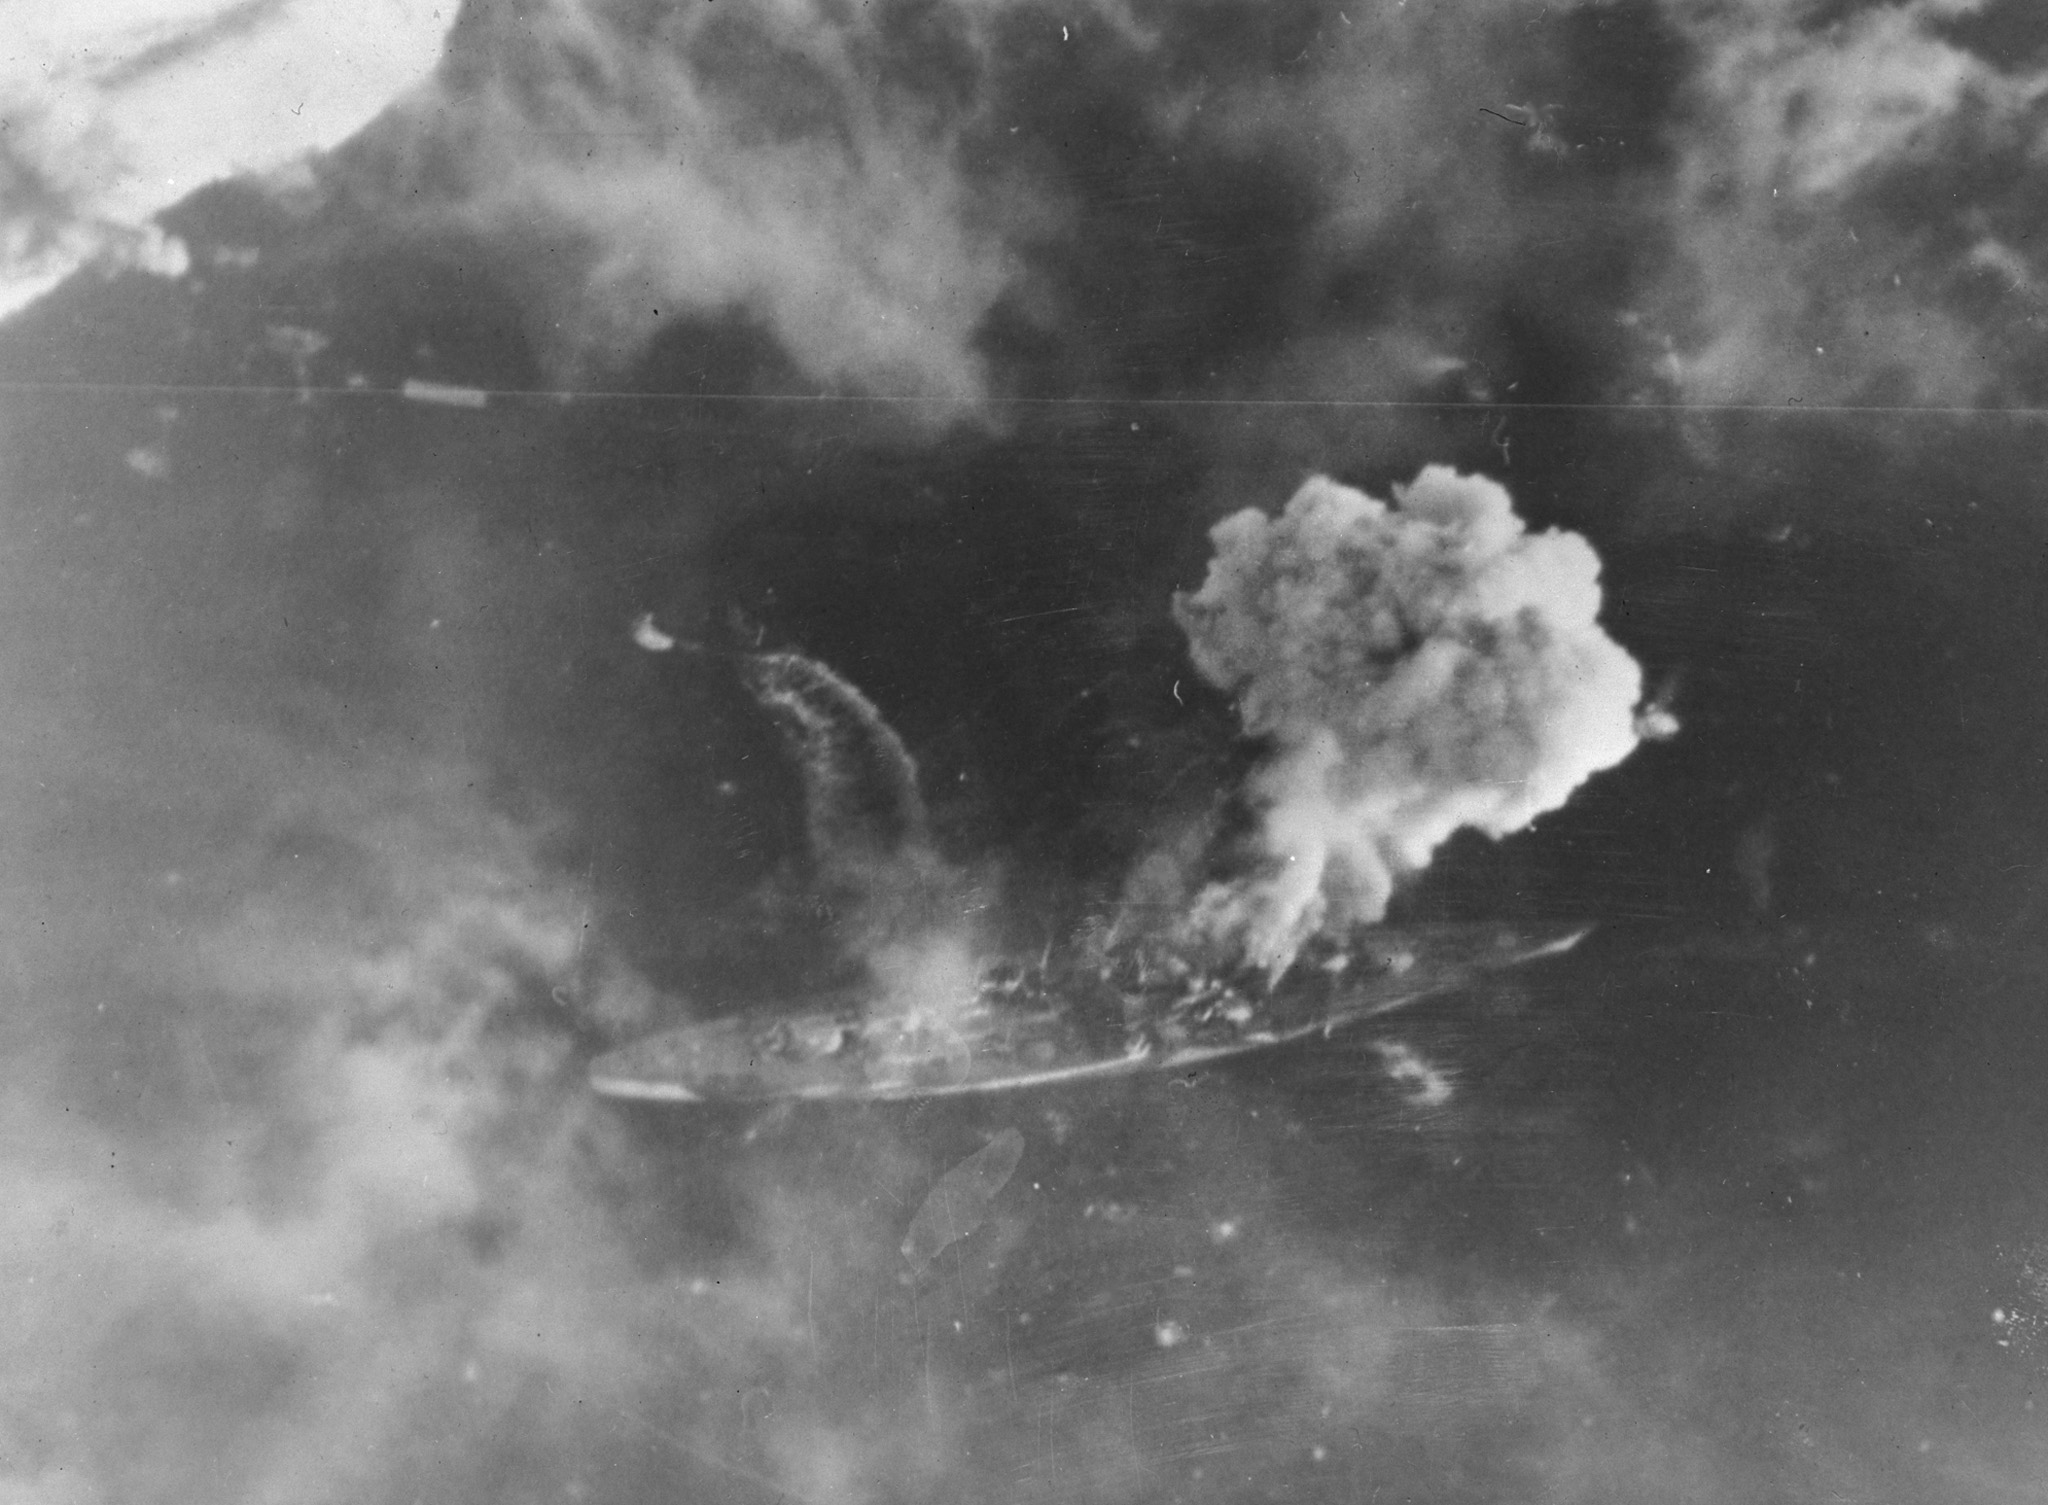 The German battleship Tirpitz under attack; Flight Lieutenant Watts was navigator on a Halifax bomber from 10 Squadron that participated in the attack. PHOTO: DND Archives, X-228